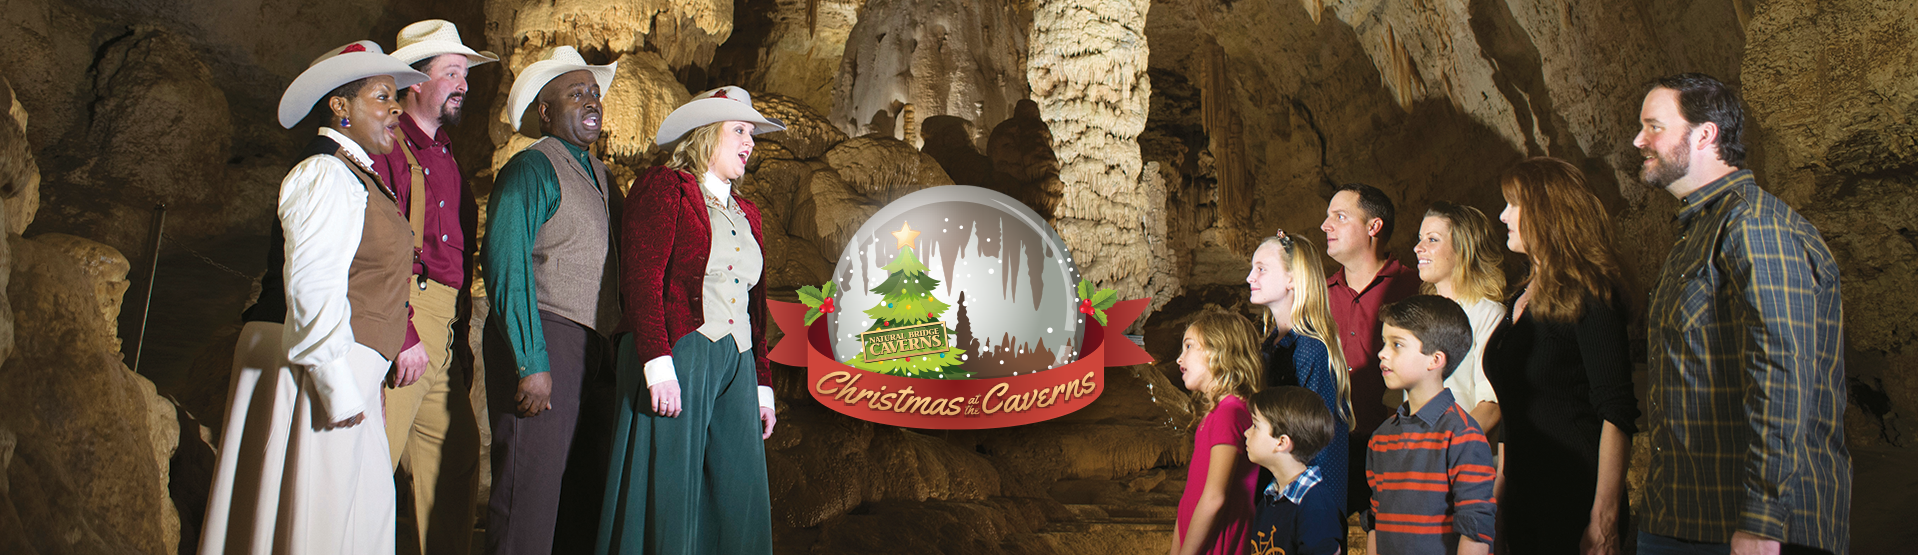 Caroling in the Caverns with Logo